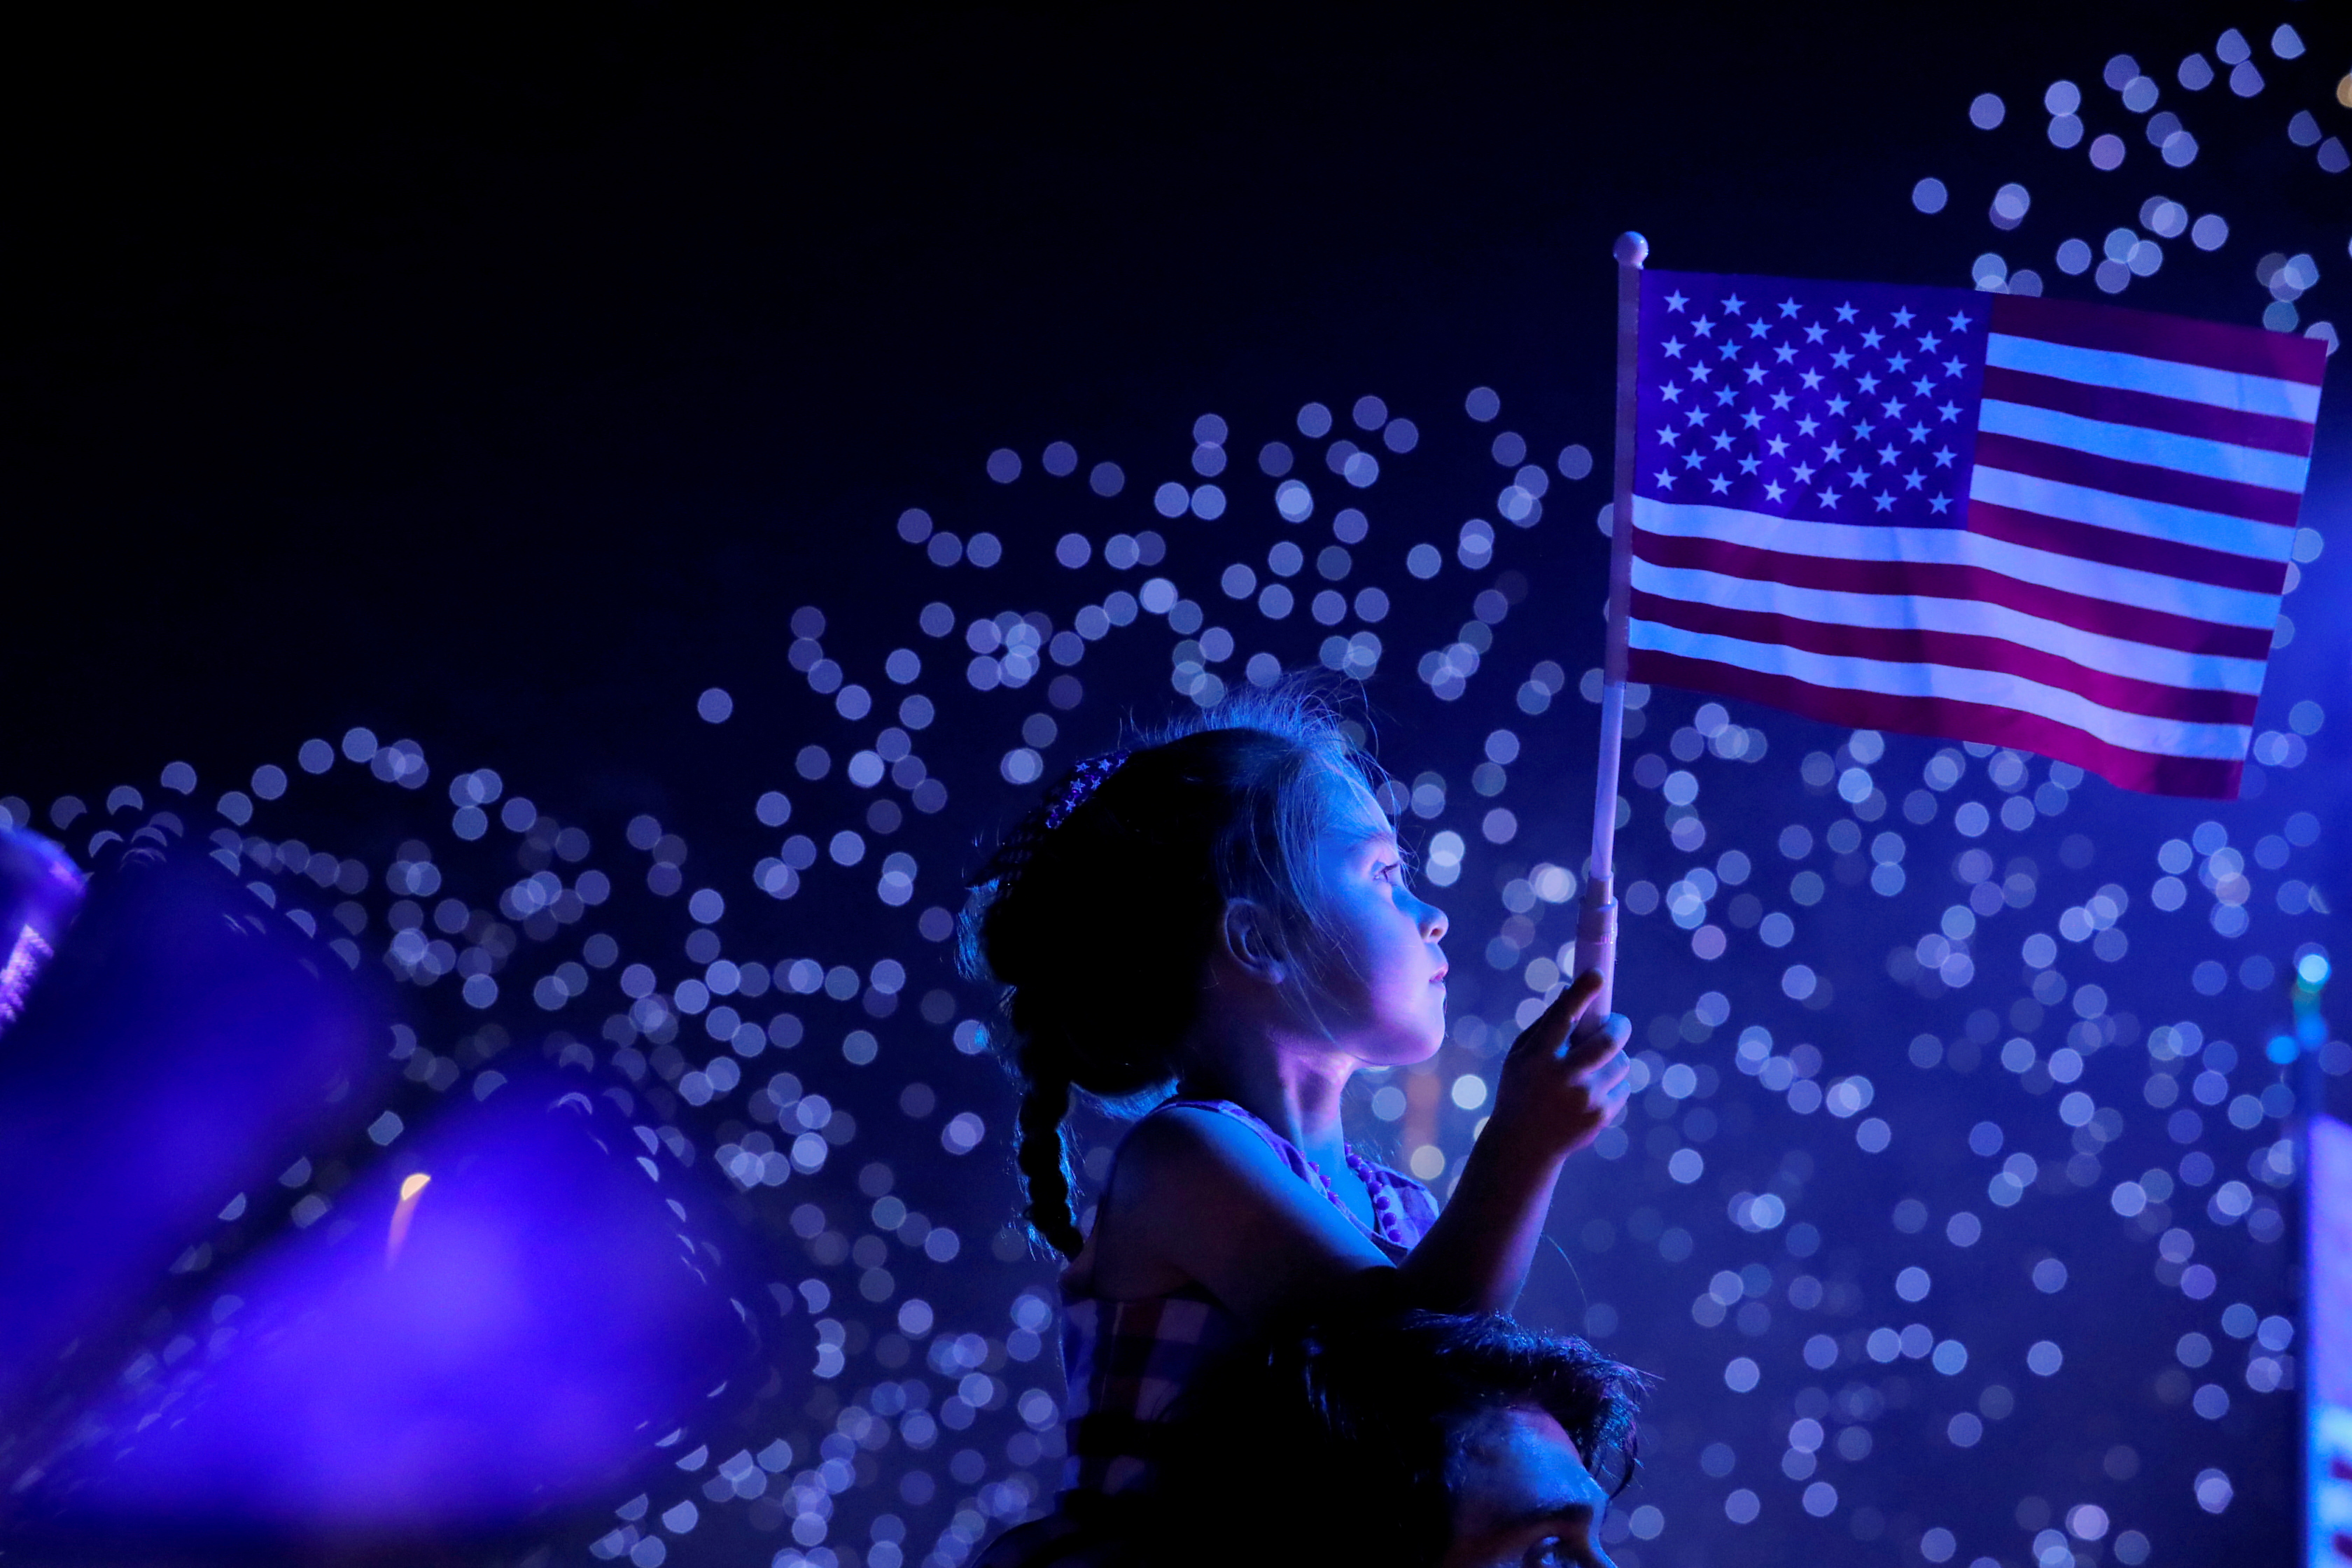 A child watches a Fourth of July fireworks in New York City, while holding an American flag.